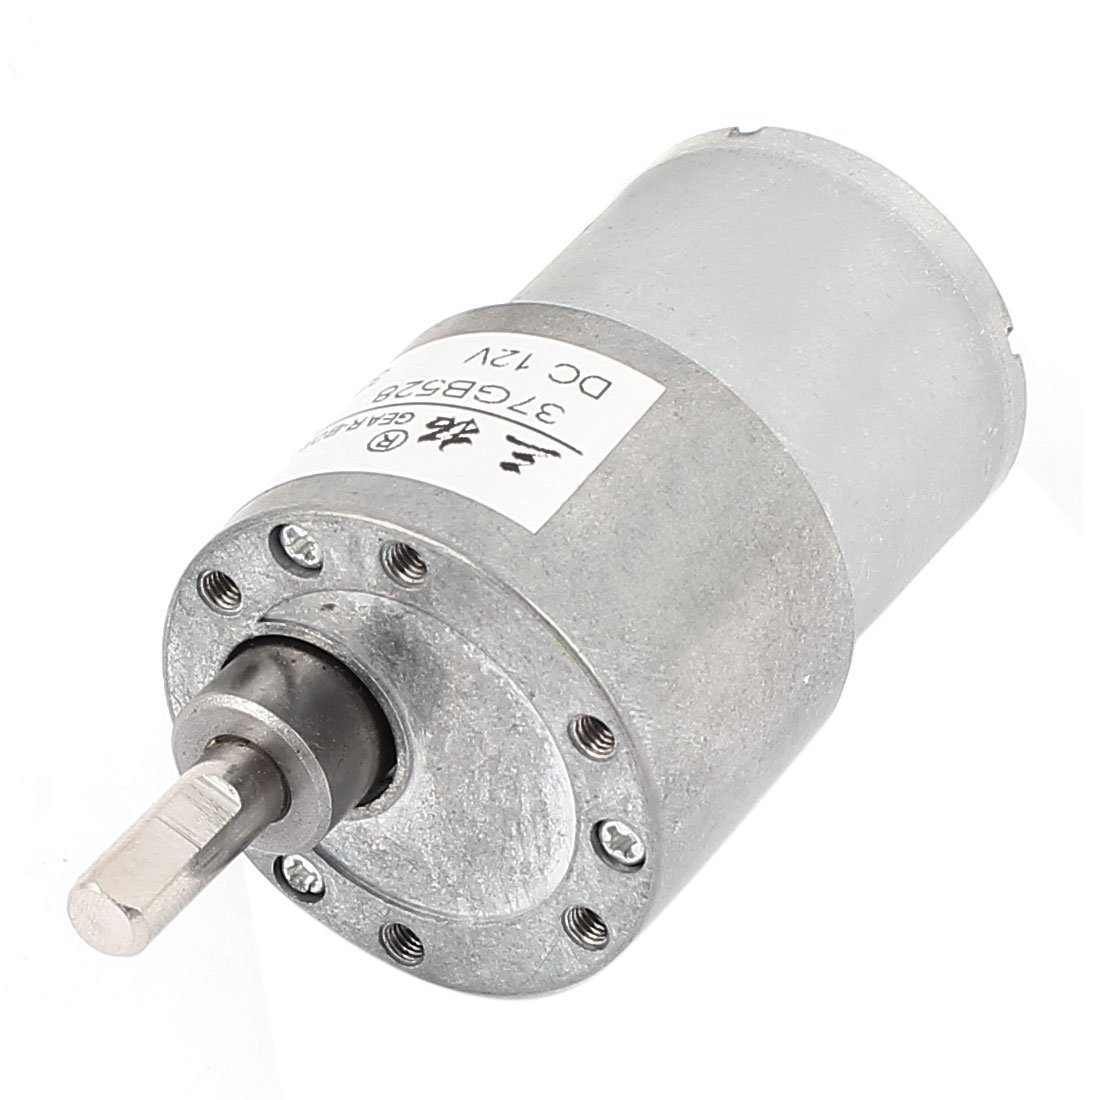 uxcell DC12V 38RPM High Torque DC Gear Box Reducer Variable Speed Motor